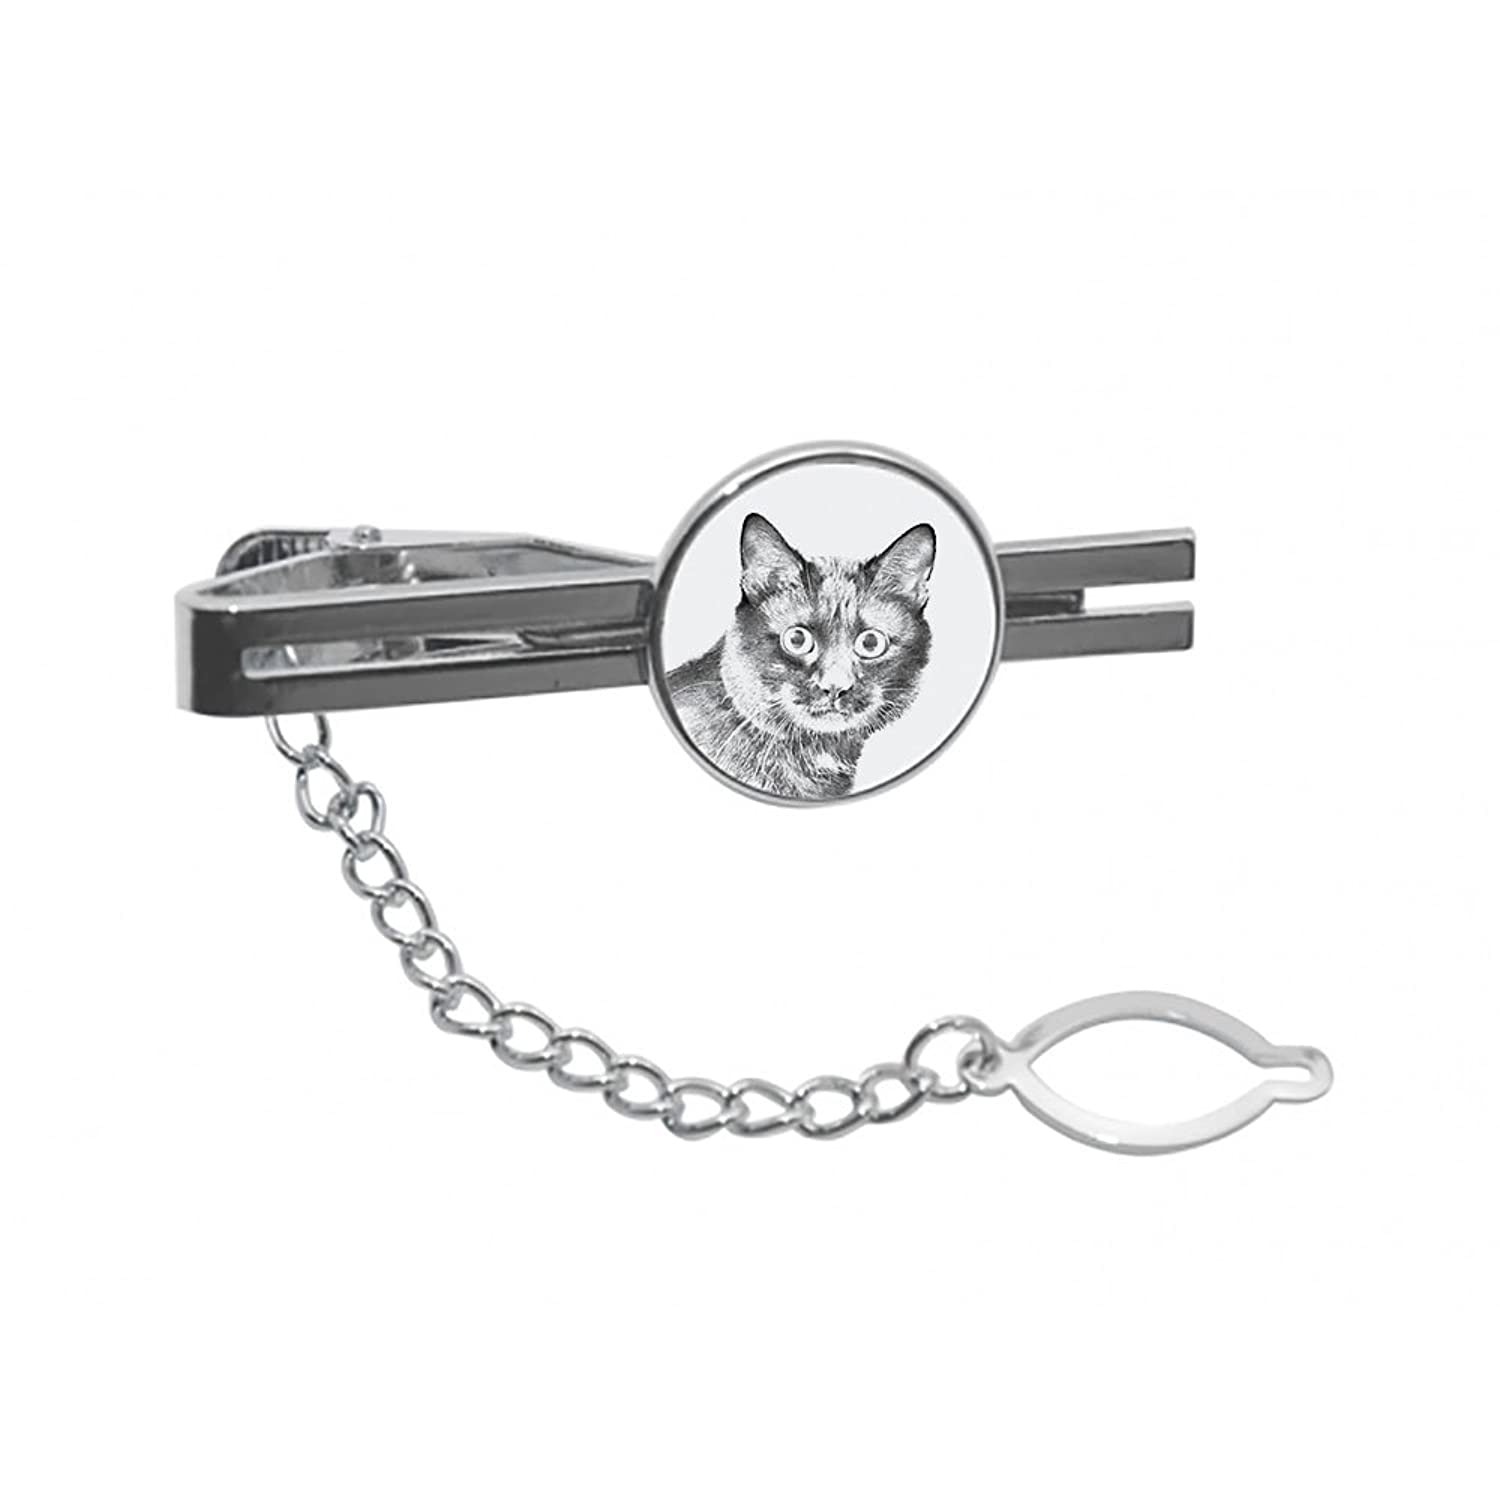 Kurilian bobtail, tie pin, clip with an image of a cat, elegant and casual style